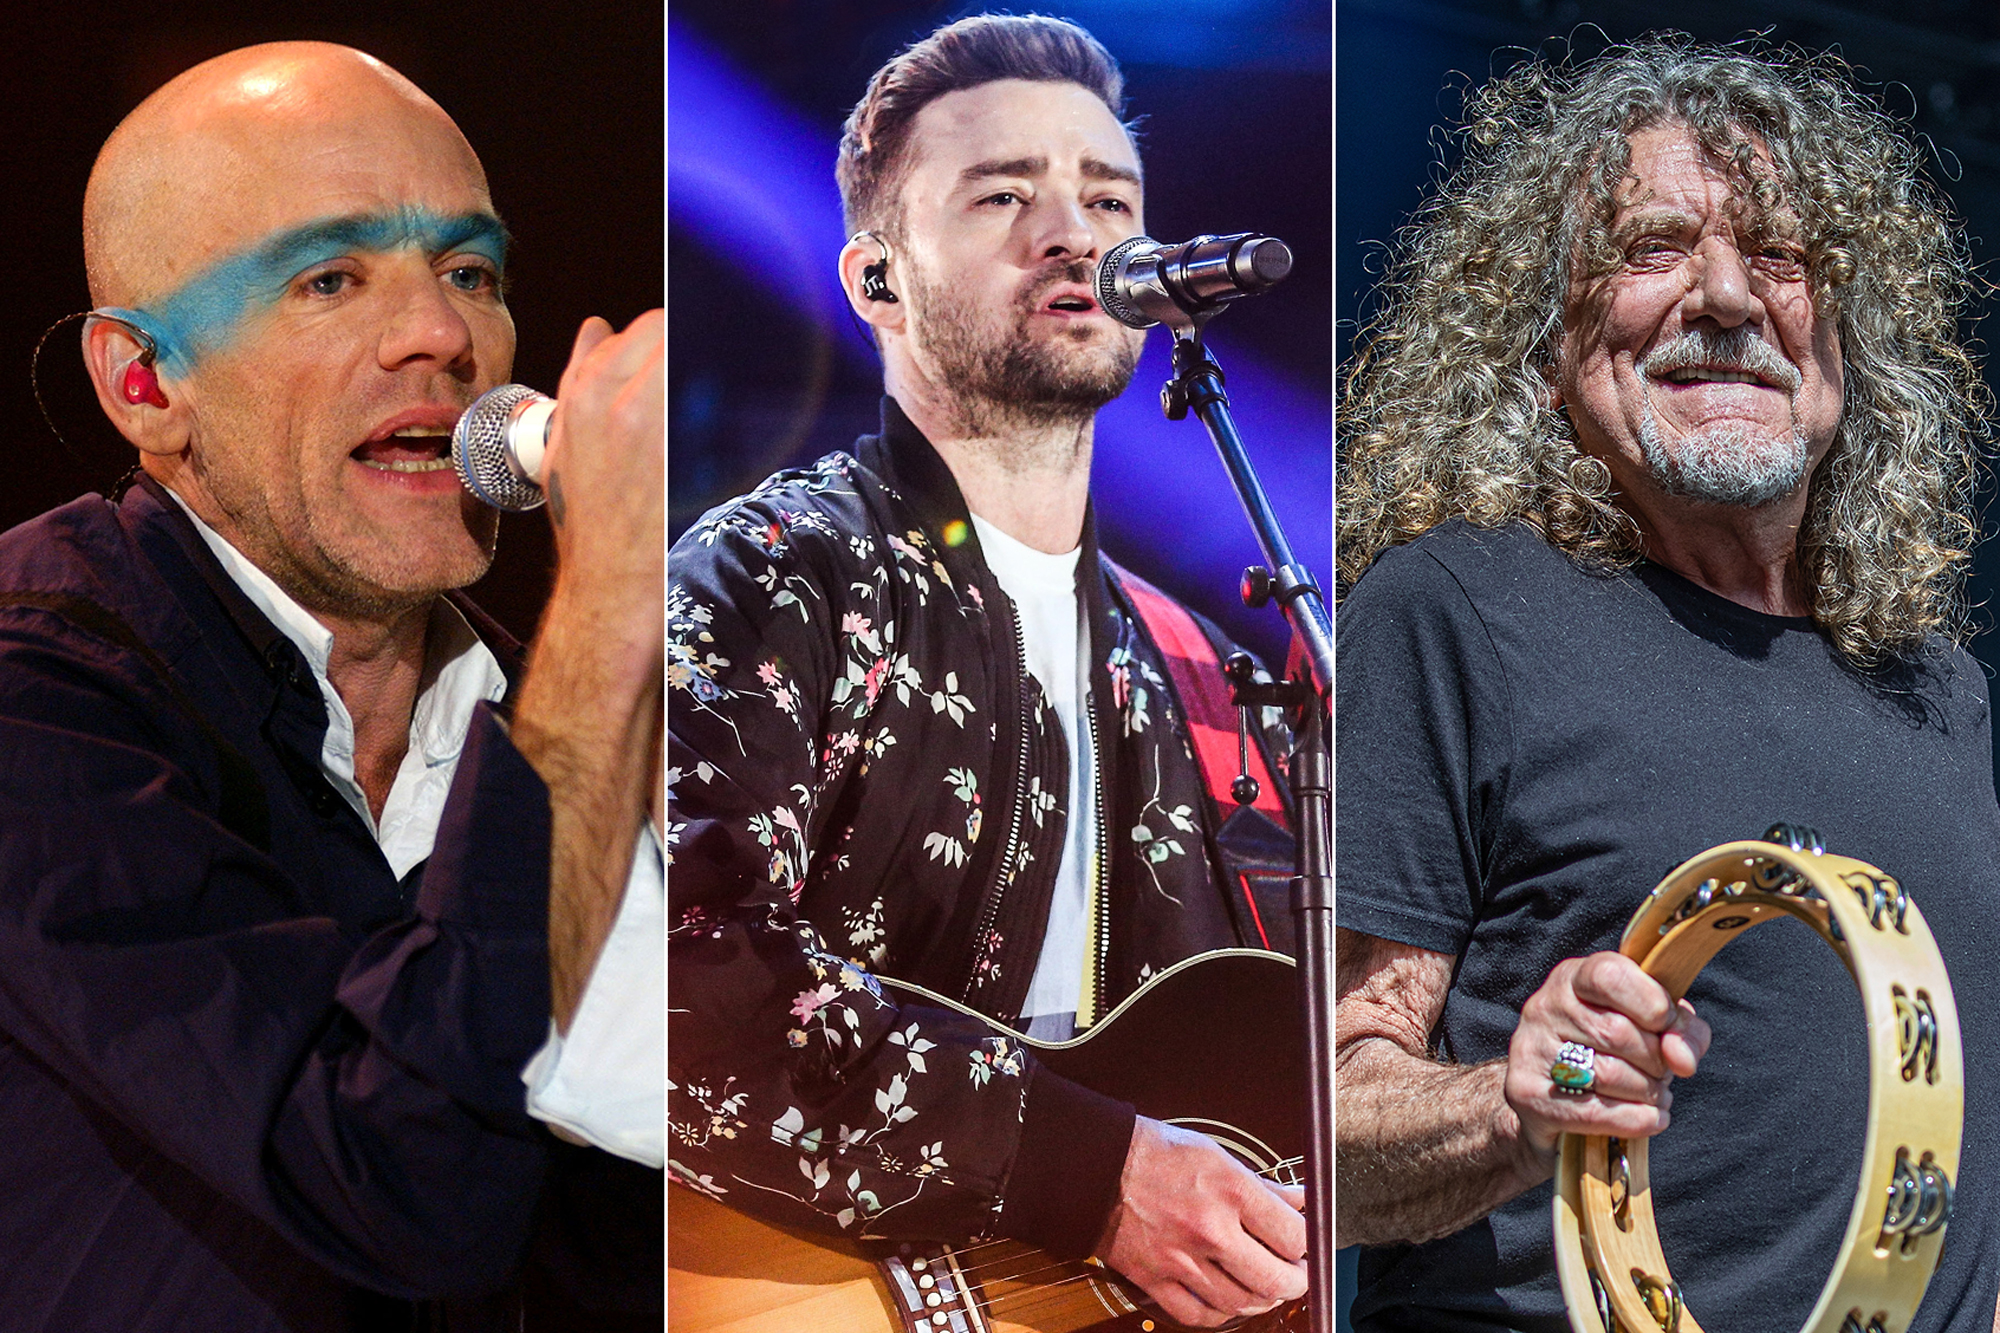 Which Band Will Reunite Next? Placing Odds on 14 Groups, From Led Zeppelin to Oasis